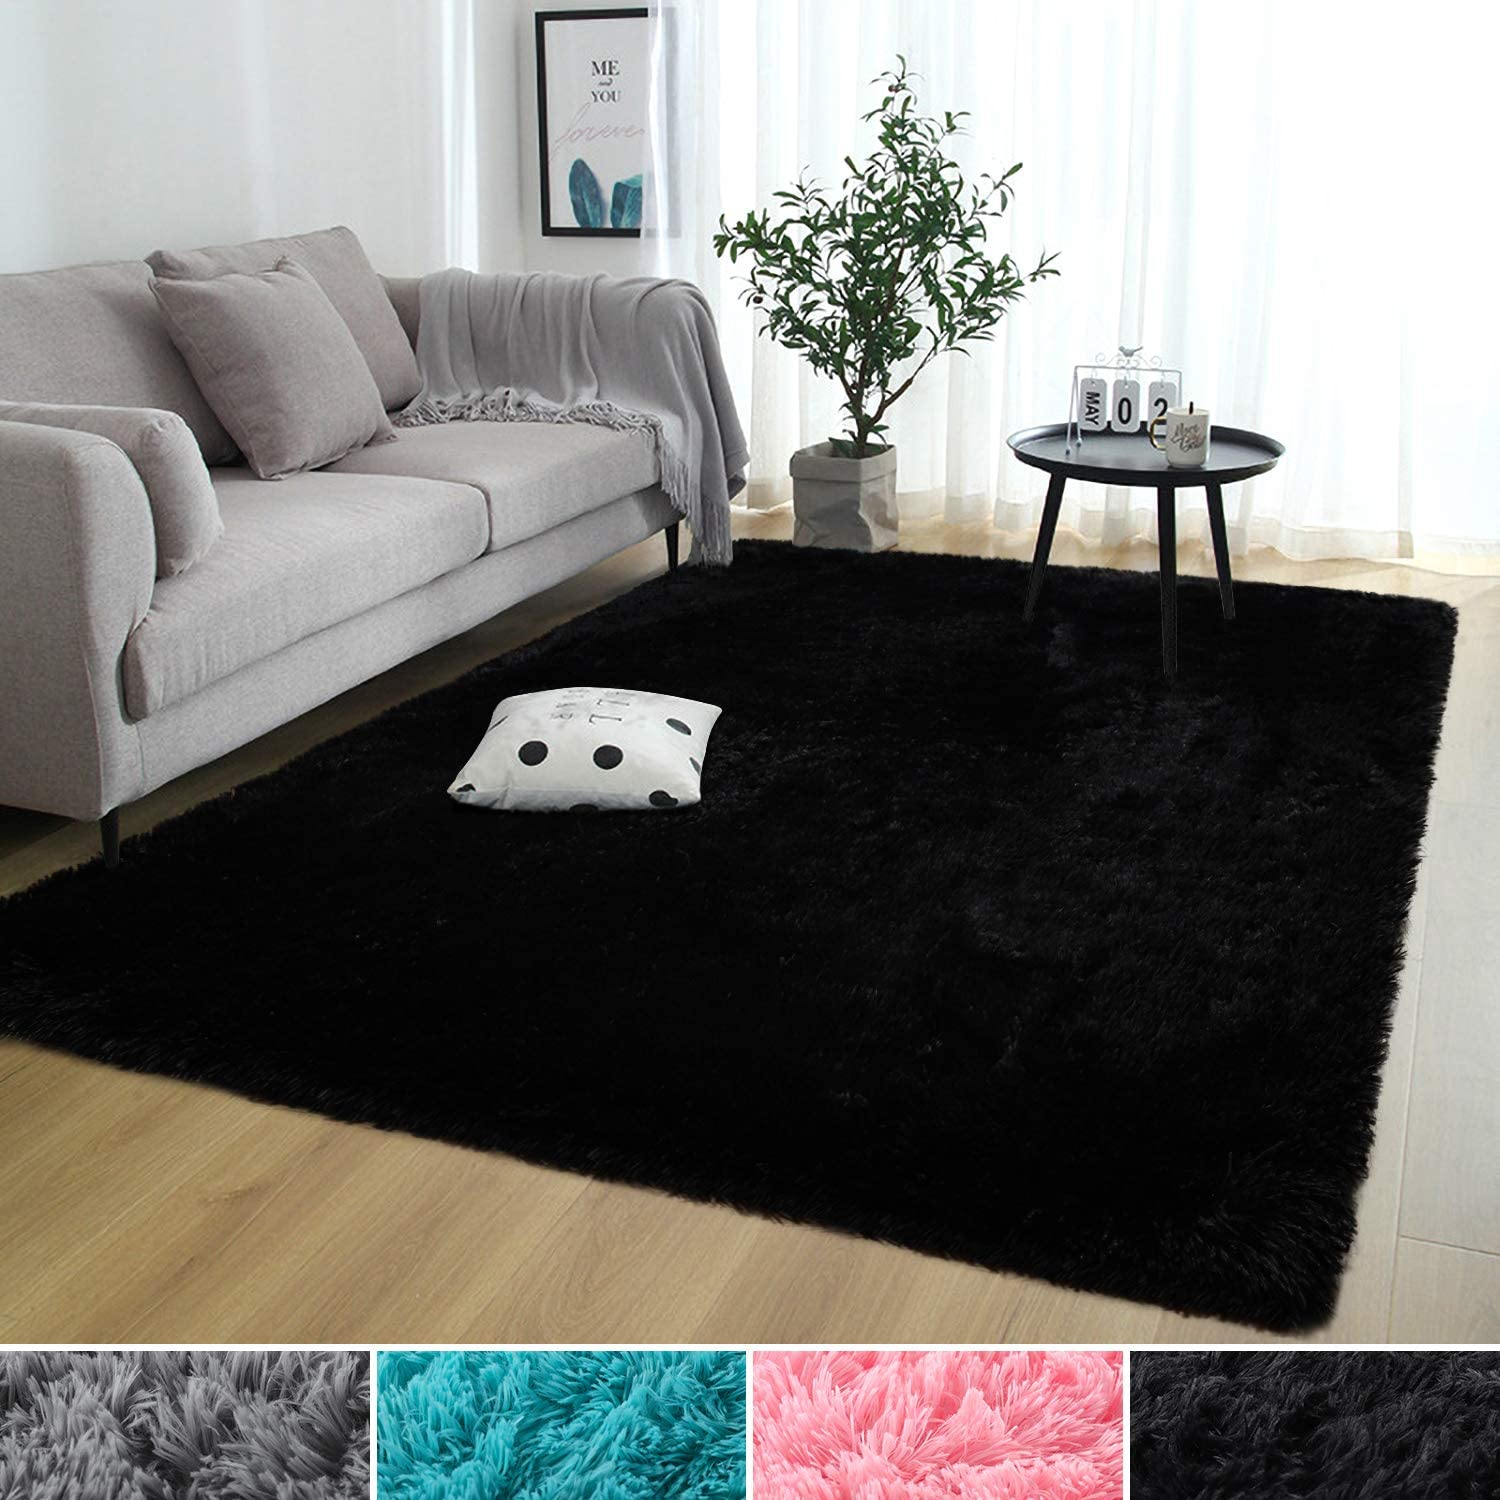 Rostyle Super Soft Fluffy Nursery Rug for Kids Teens Room Comfy Cute Floor Carpets Kids Playing Mat for Bedroom Living Room Home Decorate Area Rugs, 5 ft x 8 ft, Black